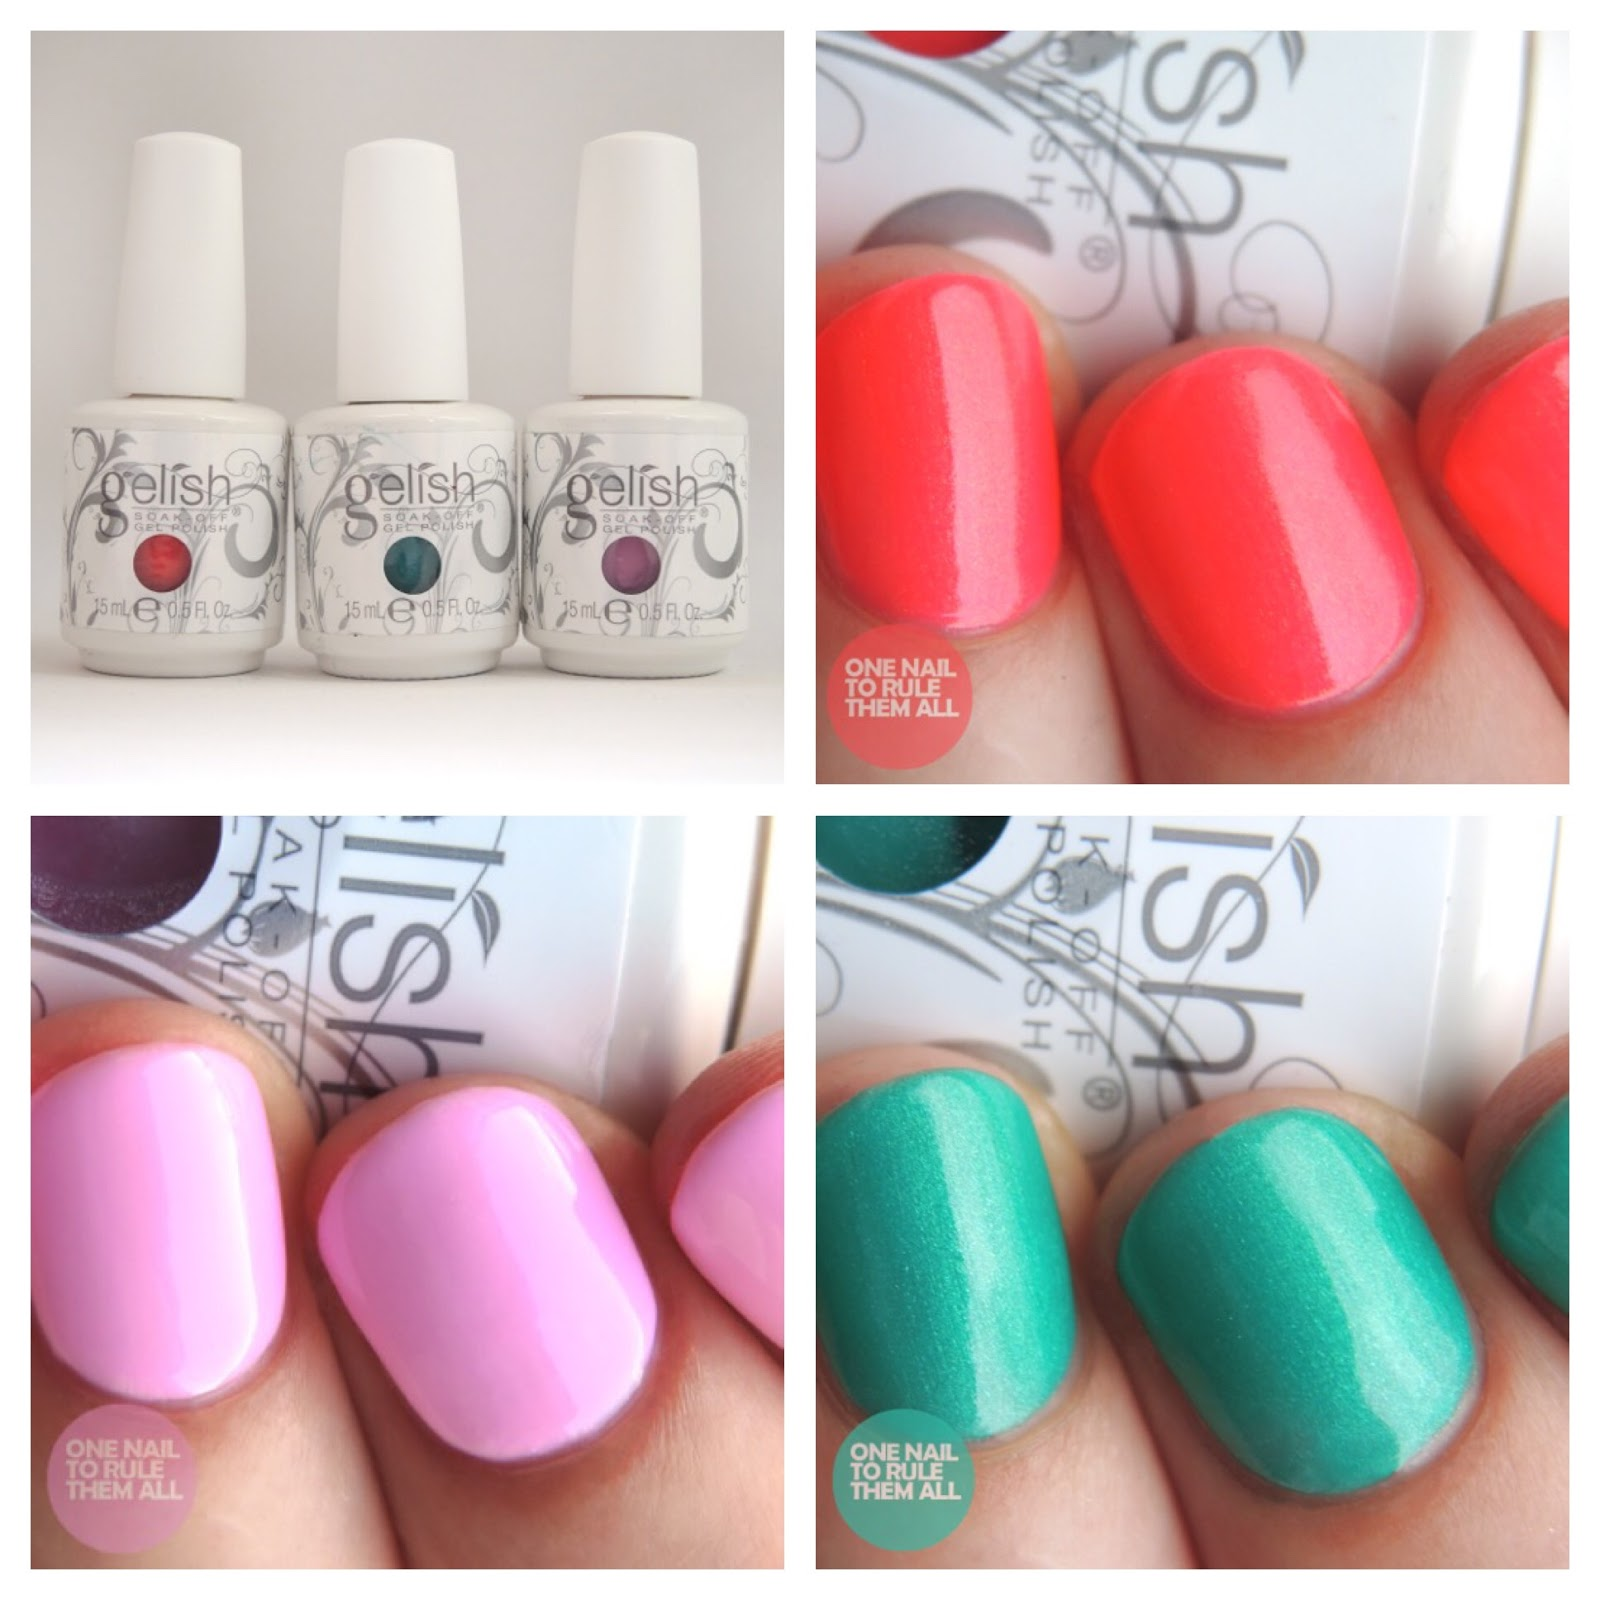 ... Them All: Gelish Street Beat Collection [Partial] Review + Swatches